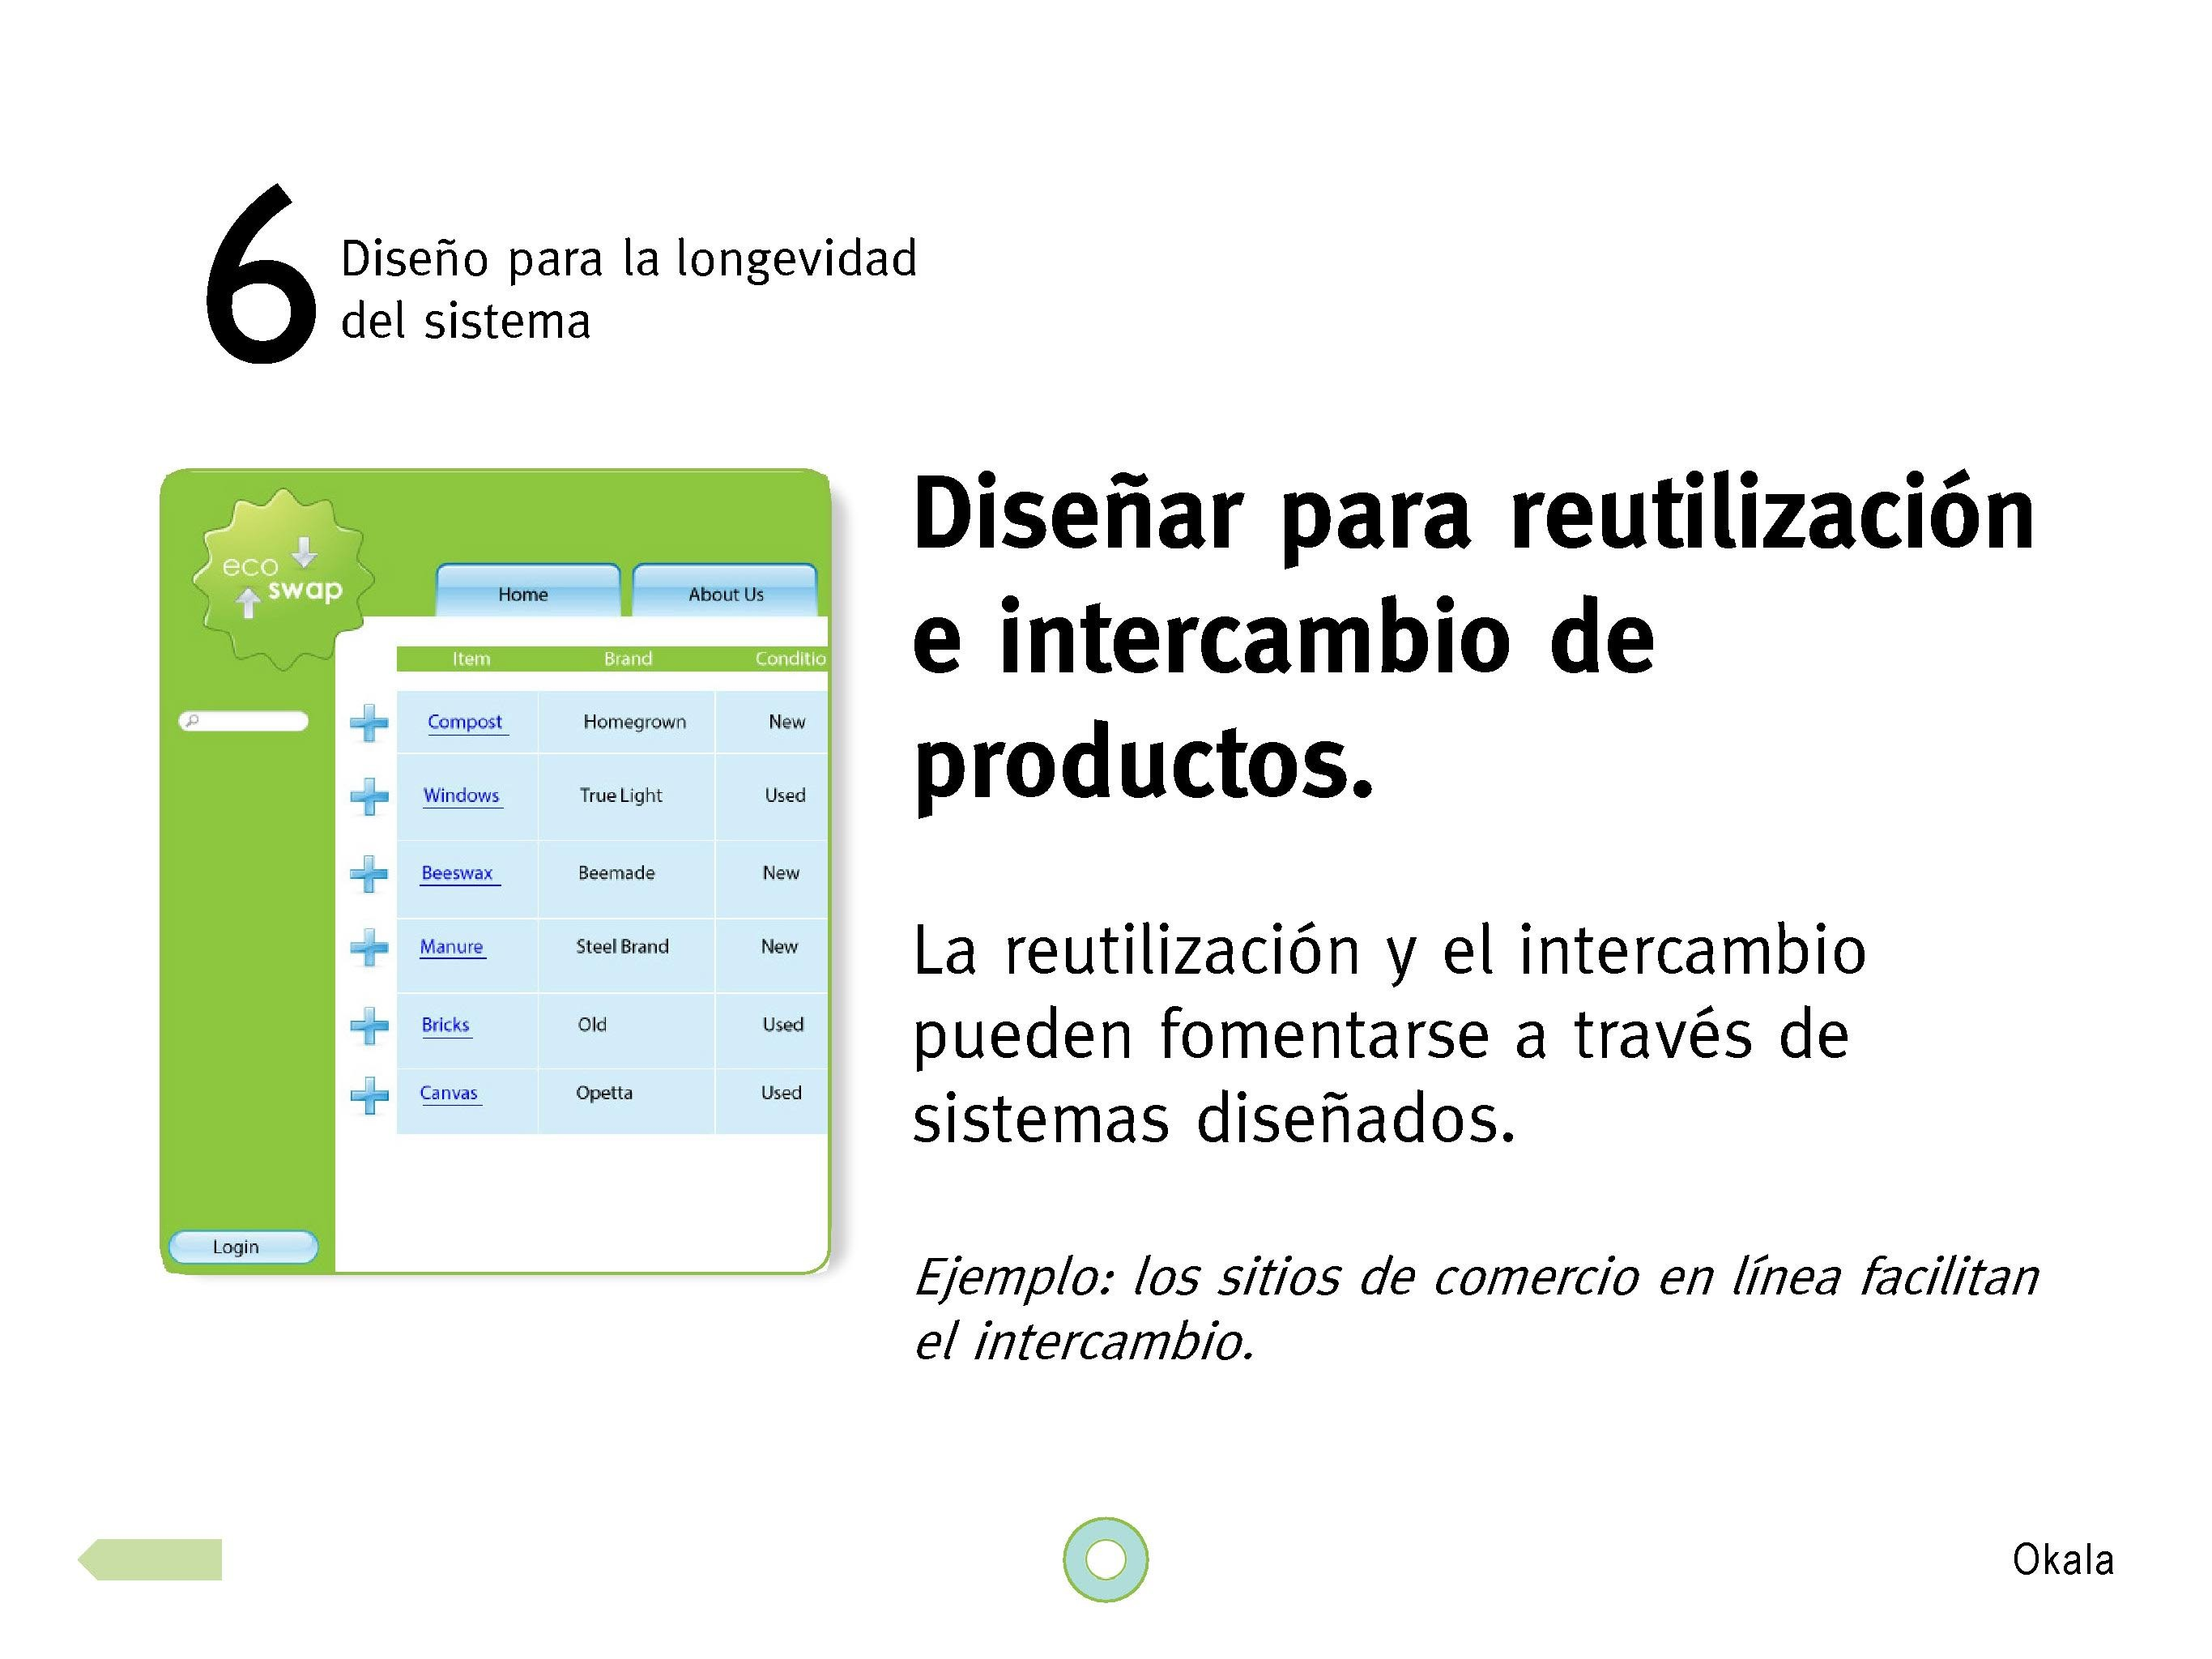 okala-ecodesign-strategy-guide-2012-spanish.new_page_35-1